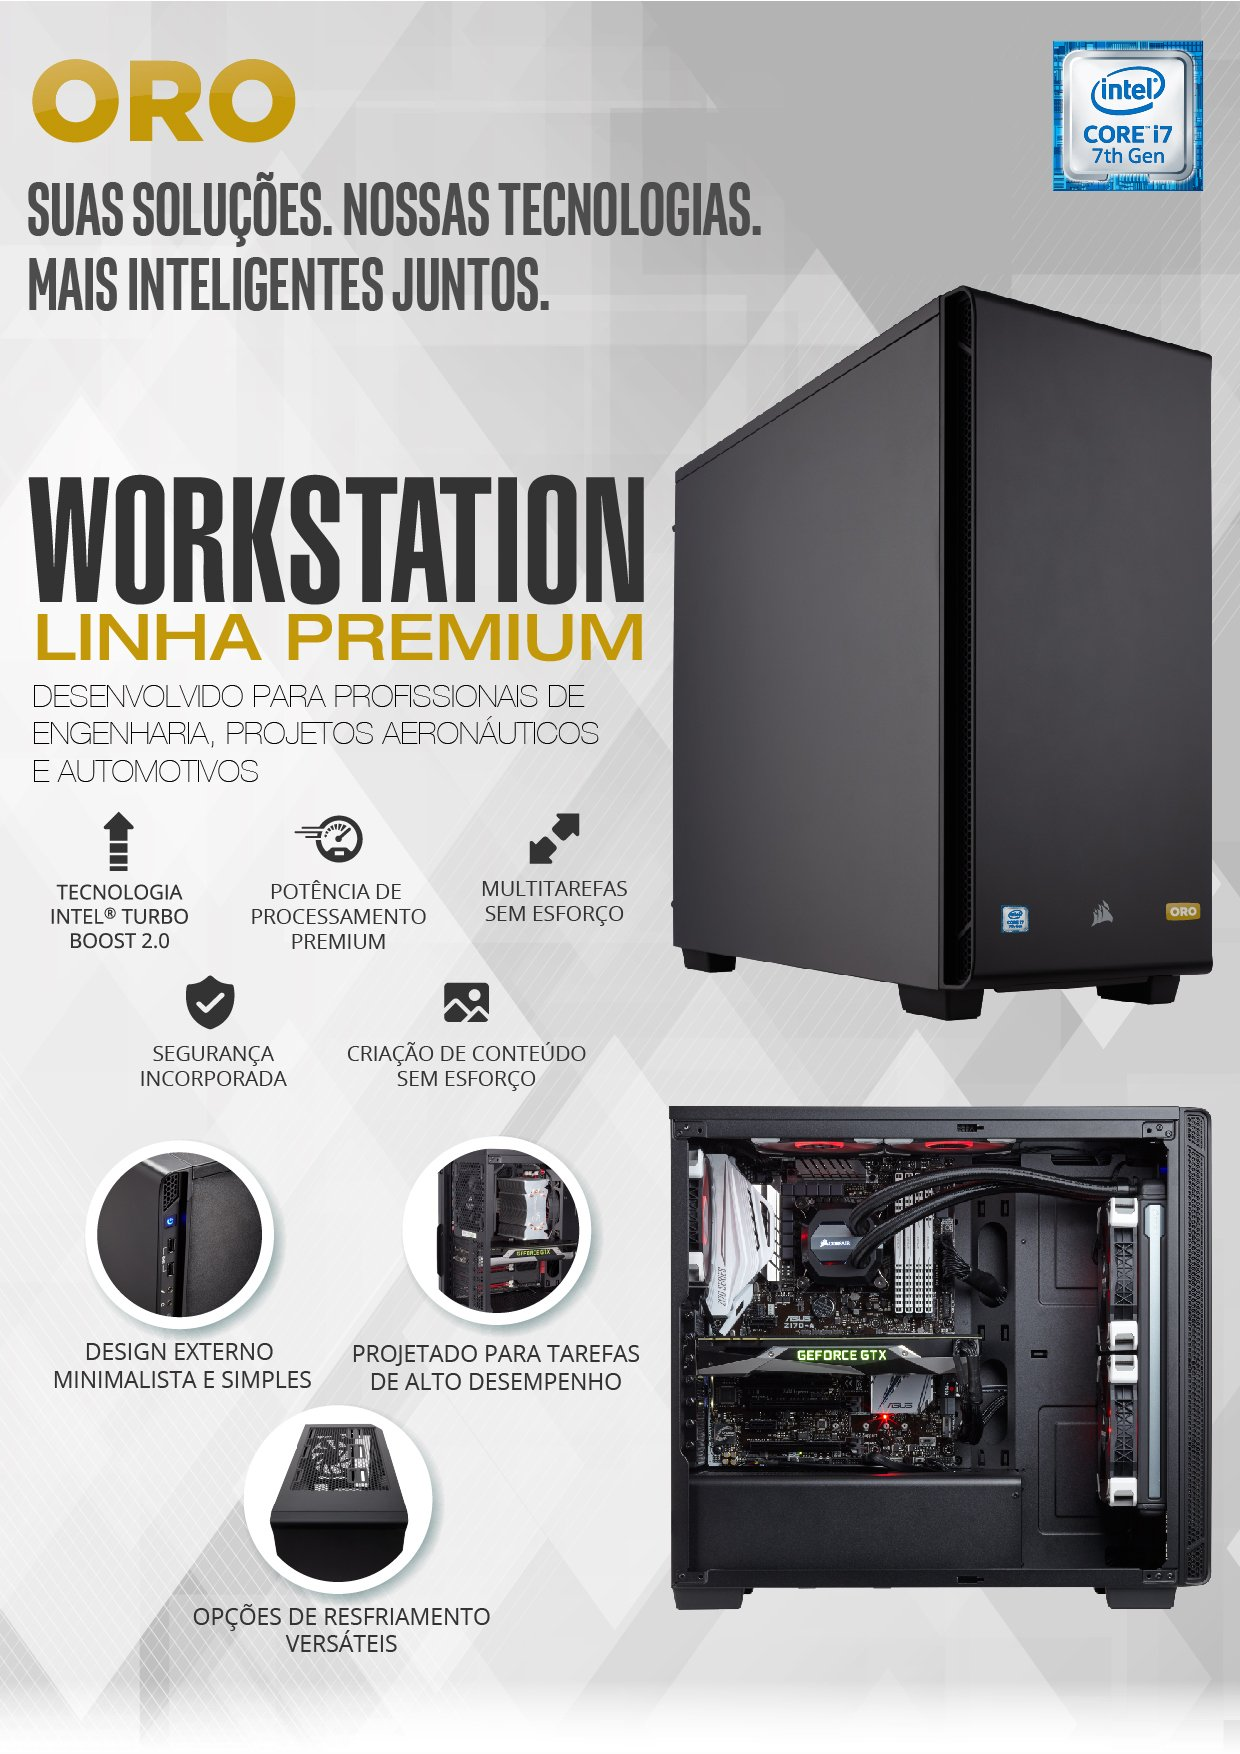 WORKSTATION INTEL I7-7700 32GB / 2TB / SSD 240 / QUADRO 5GB / WINDOWS 10 PROFESSIONAL - ORO 3